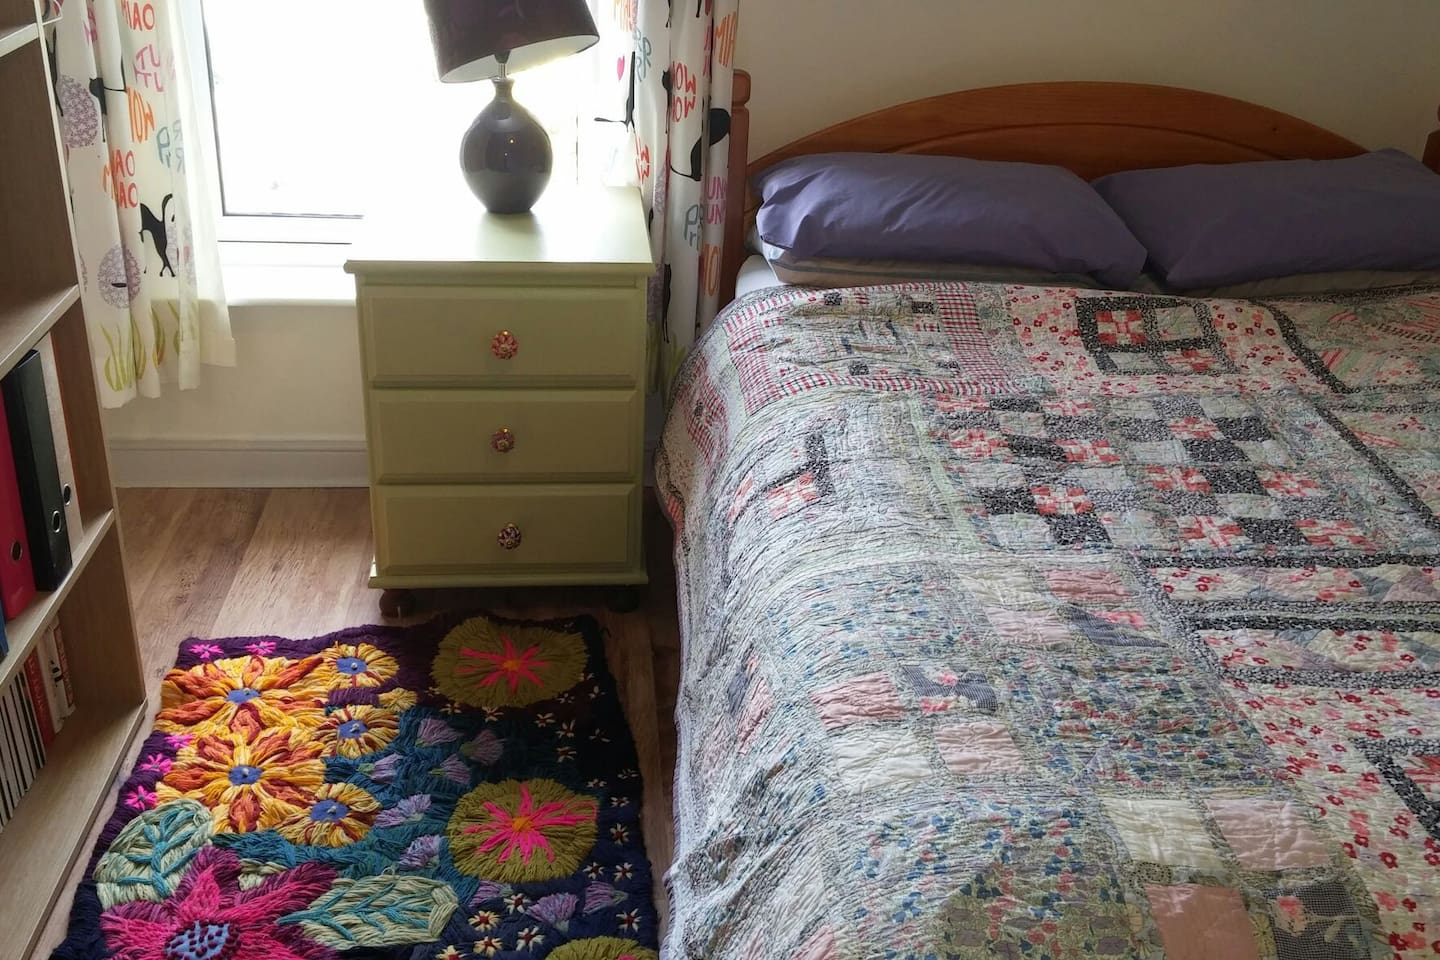 Bedroom is located at the back of the building overlooking the garden (note shared bathroom)